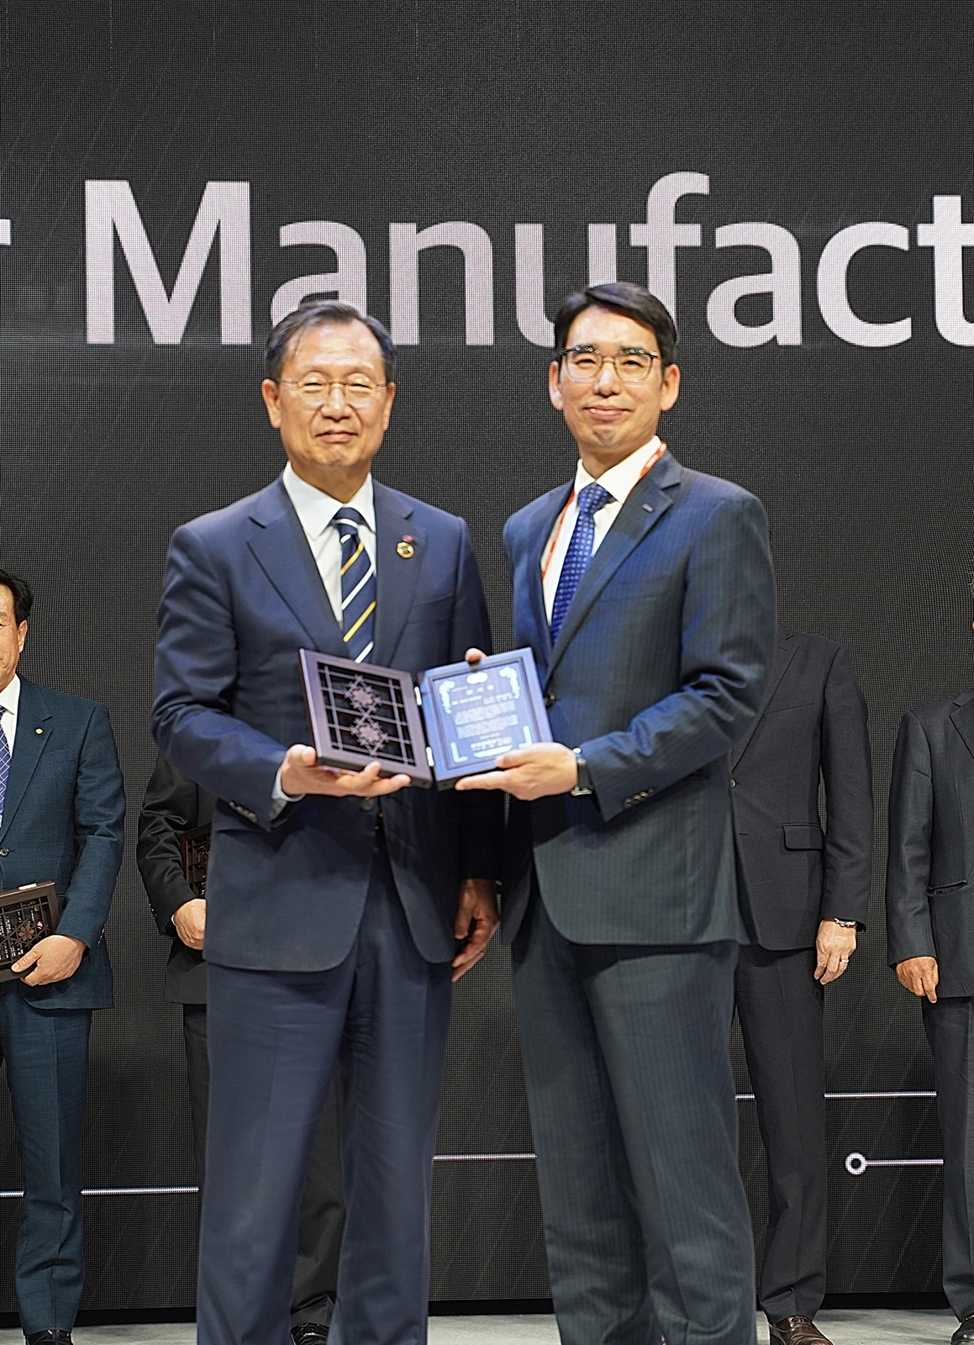 Kepco CEO Kim Jong-kap (left) and Taihan CEO Na Hyung-kyun pose for a photo after the 2019 BIXPO Awards on Friday in Gwangju. (Taihan)